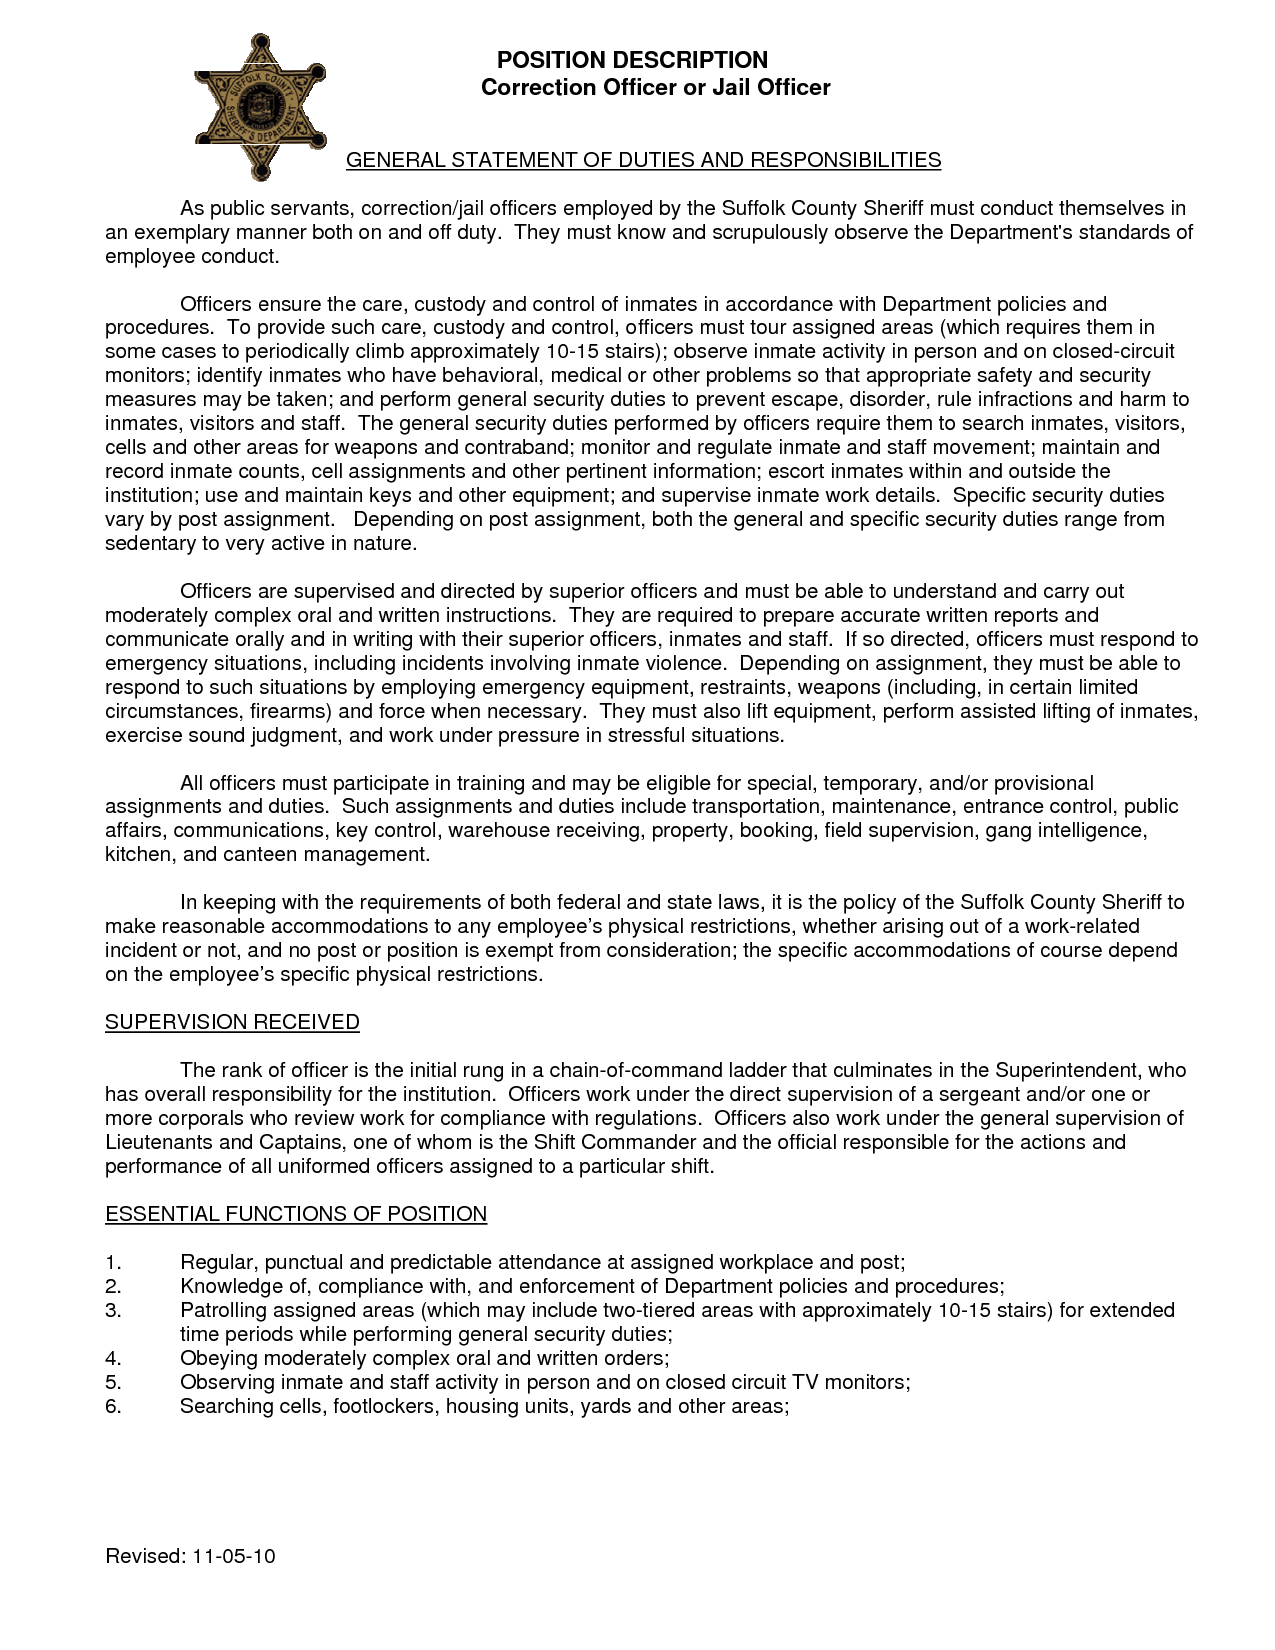 resume Sample Resume For Correctional Officer resume for detention officer httpwww resumecareer inforesume additional information 9 correctional job description duties summary